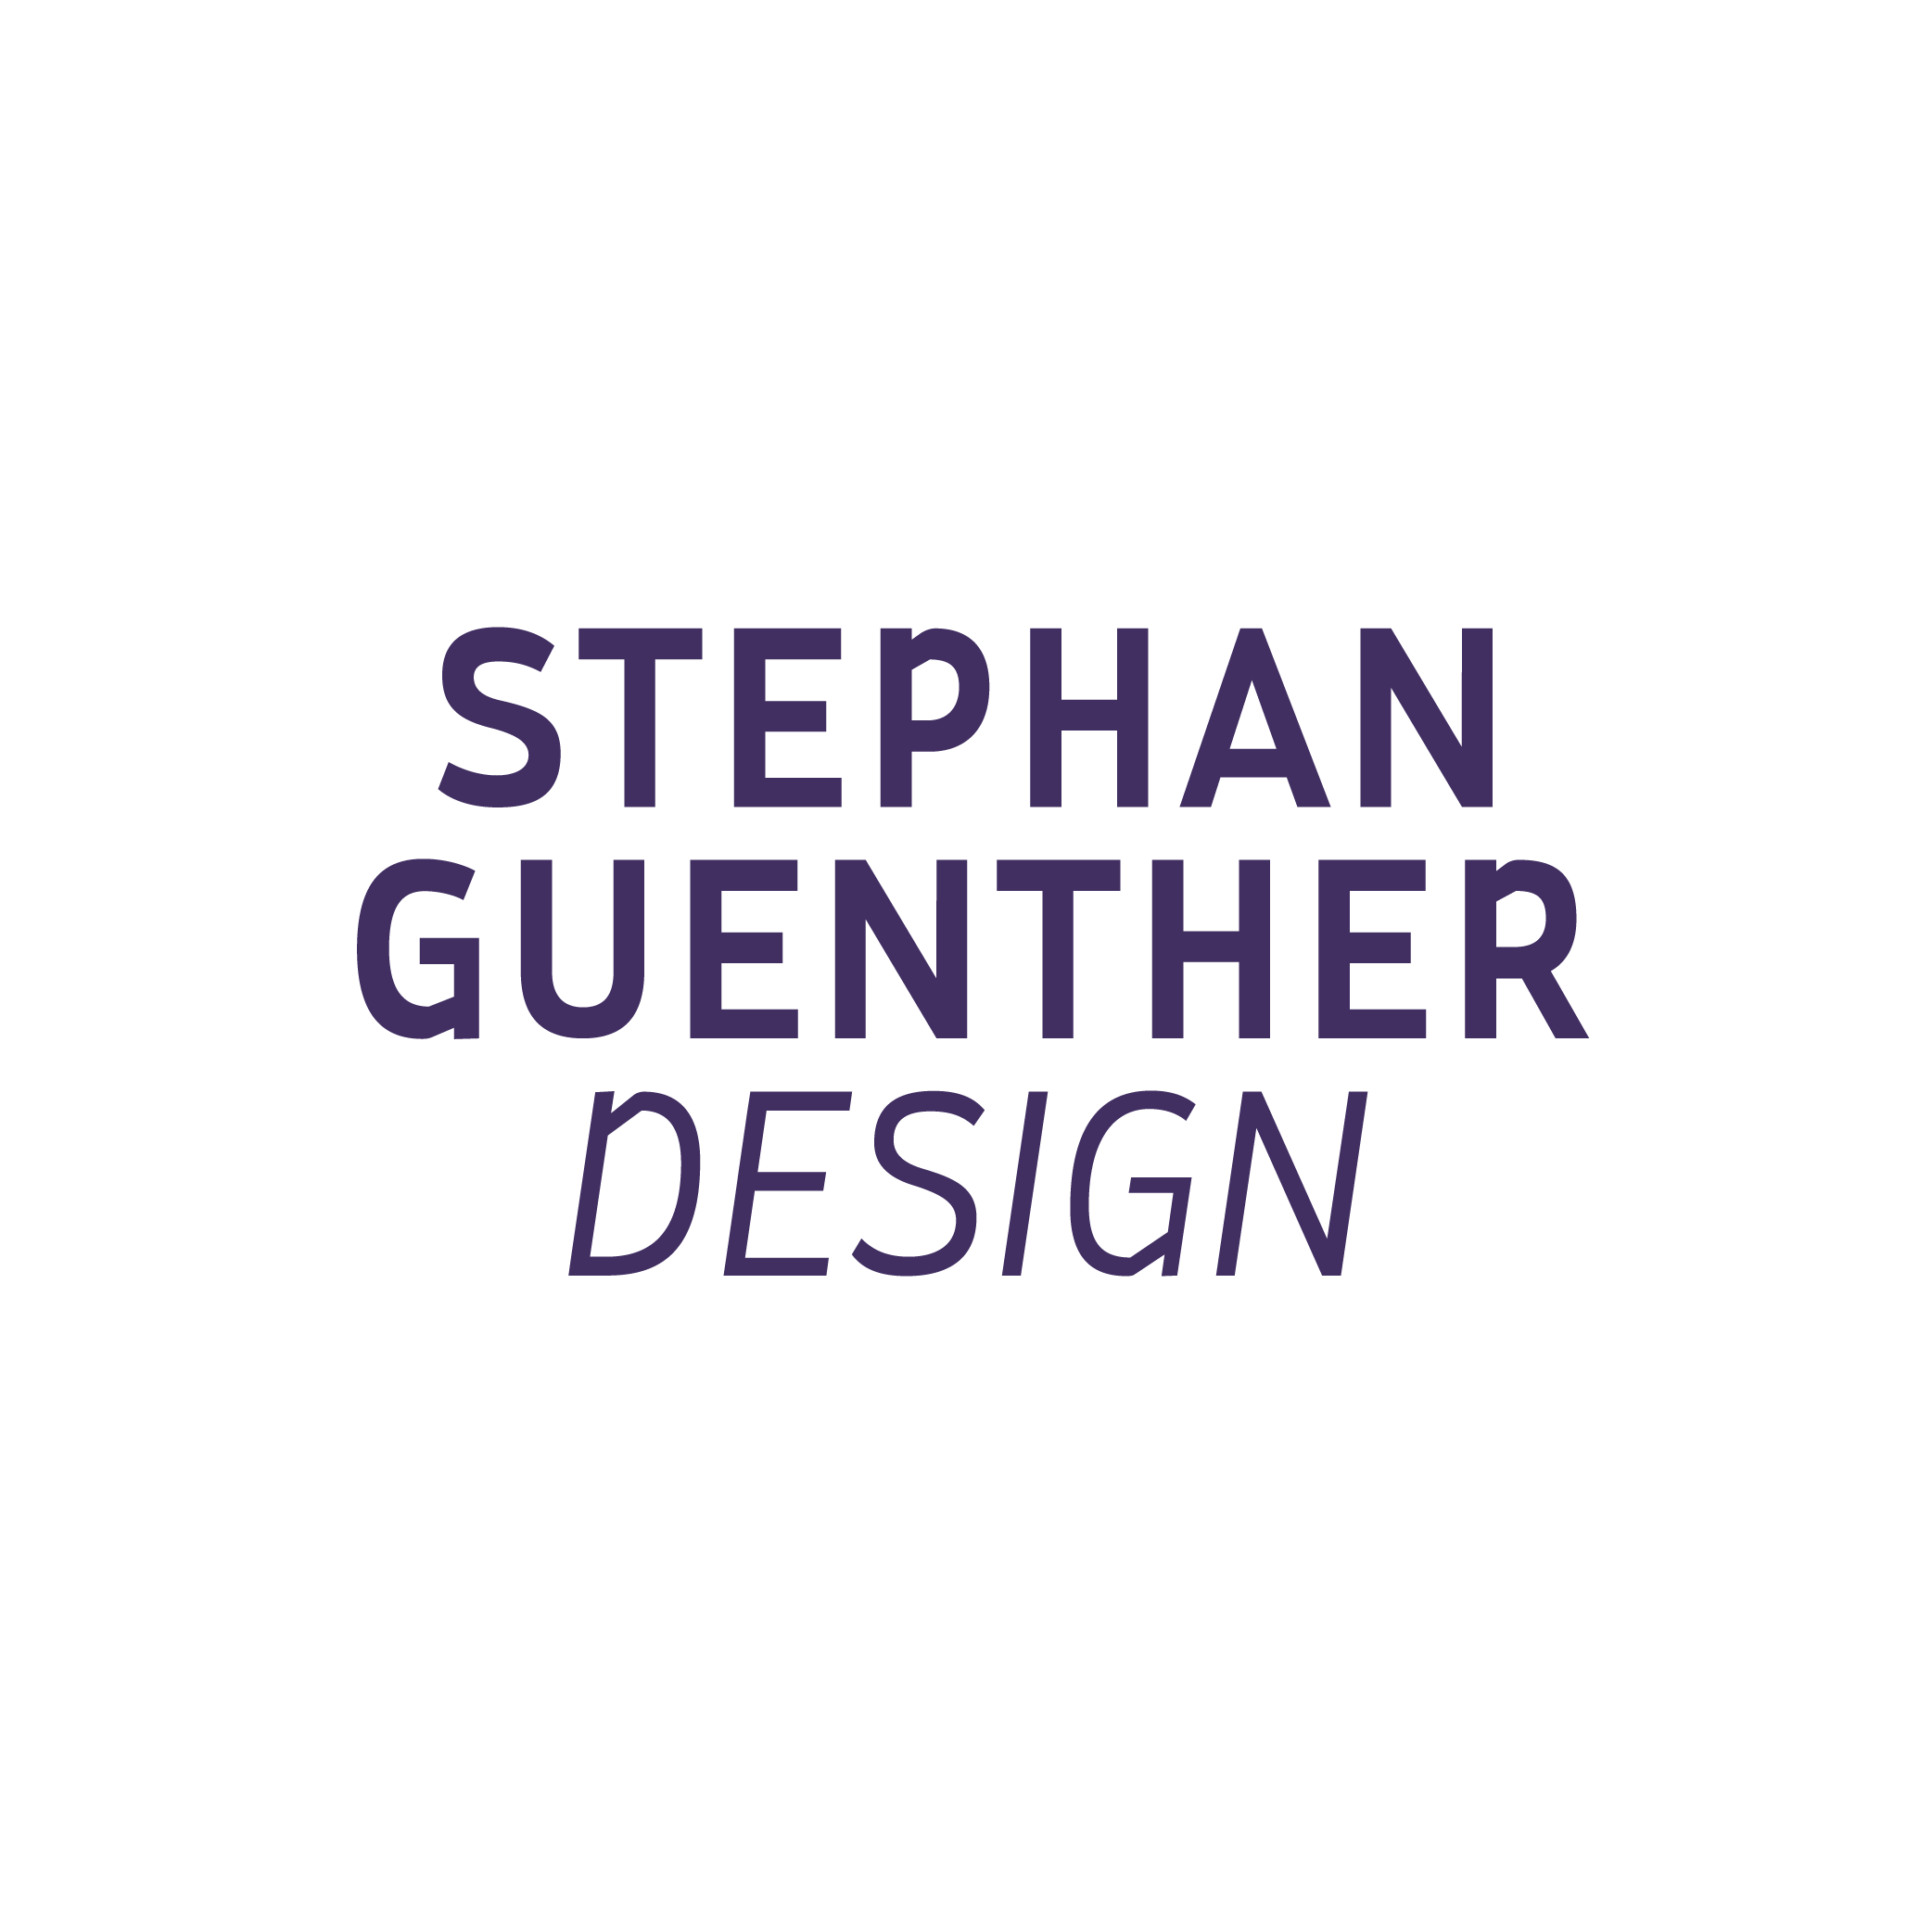 Stephan Guenther Design